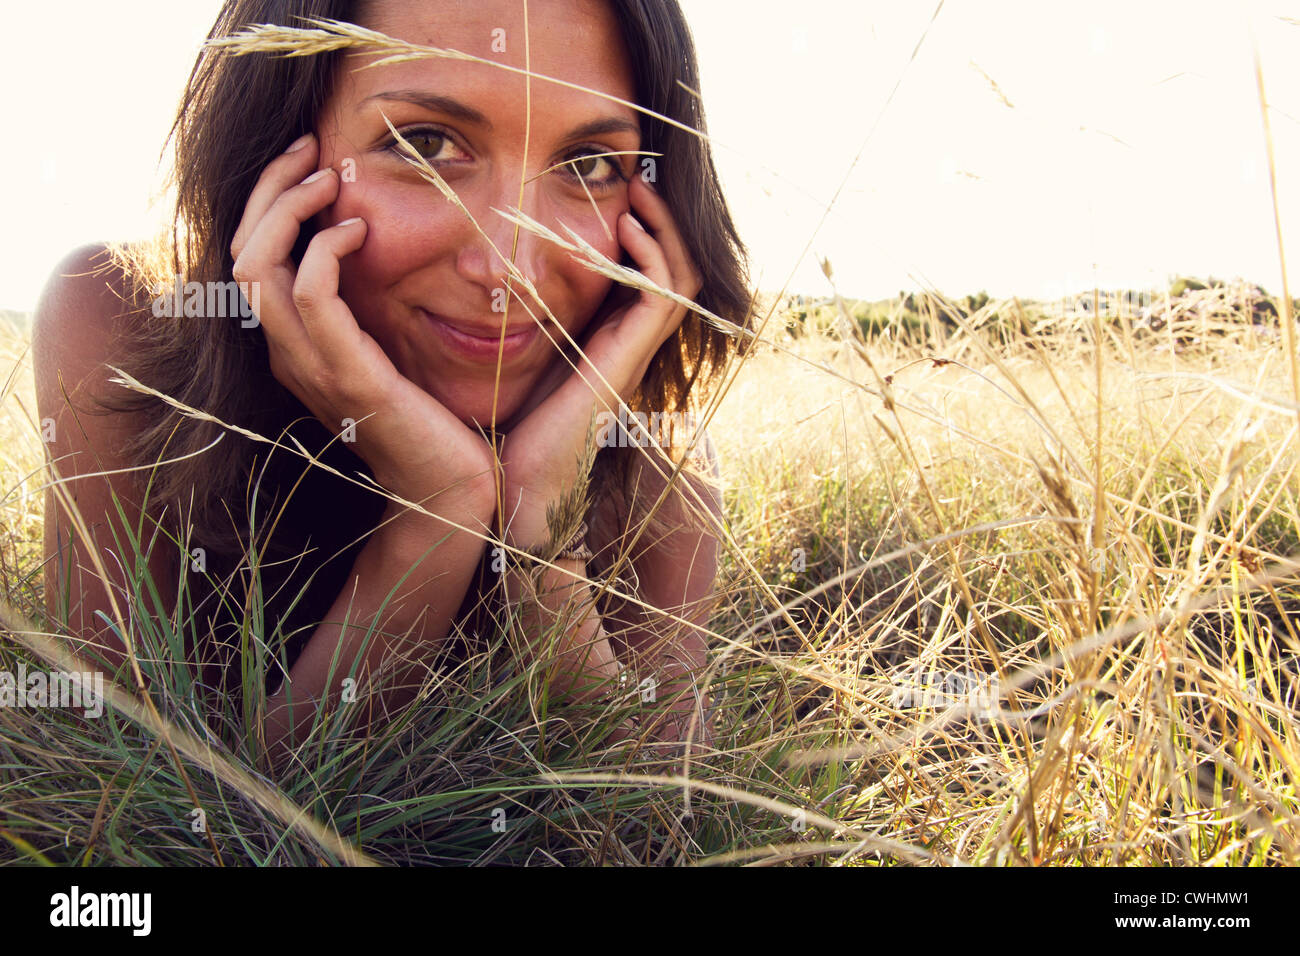 young woman,enjoyment,relaxation,summer - Stock Image